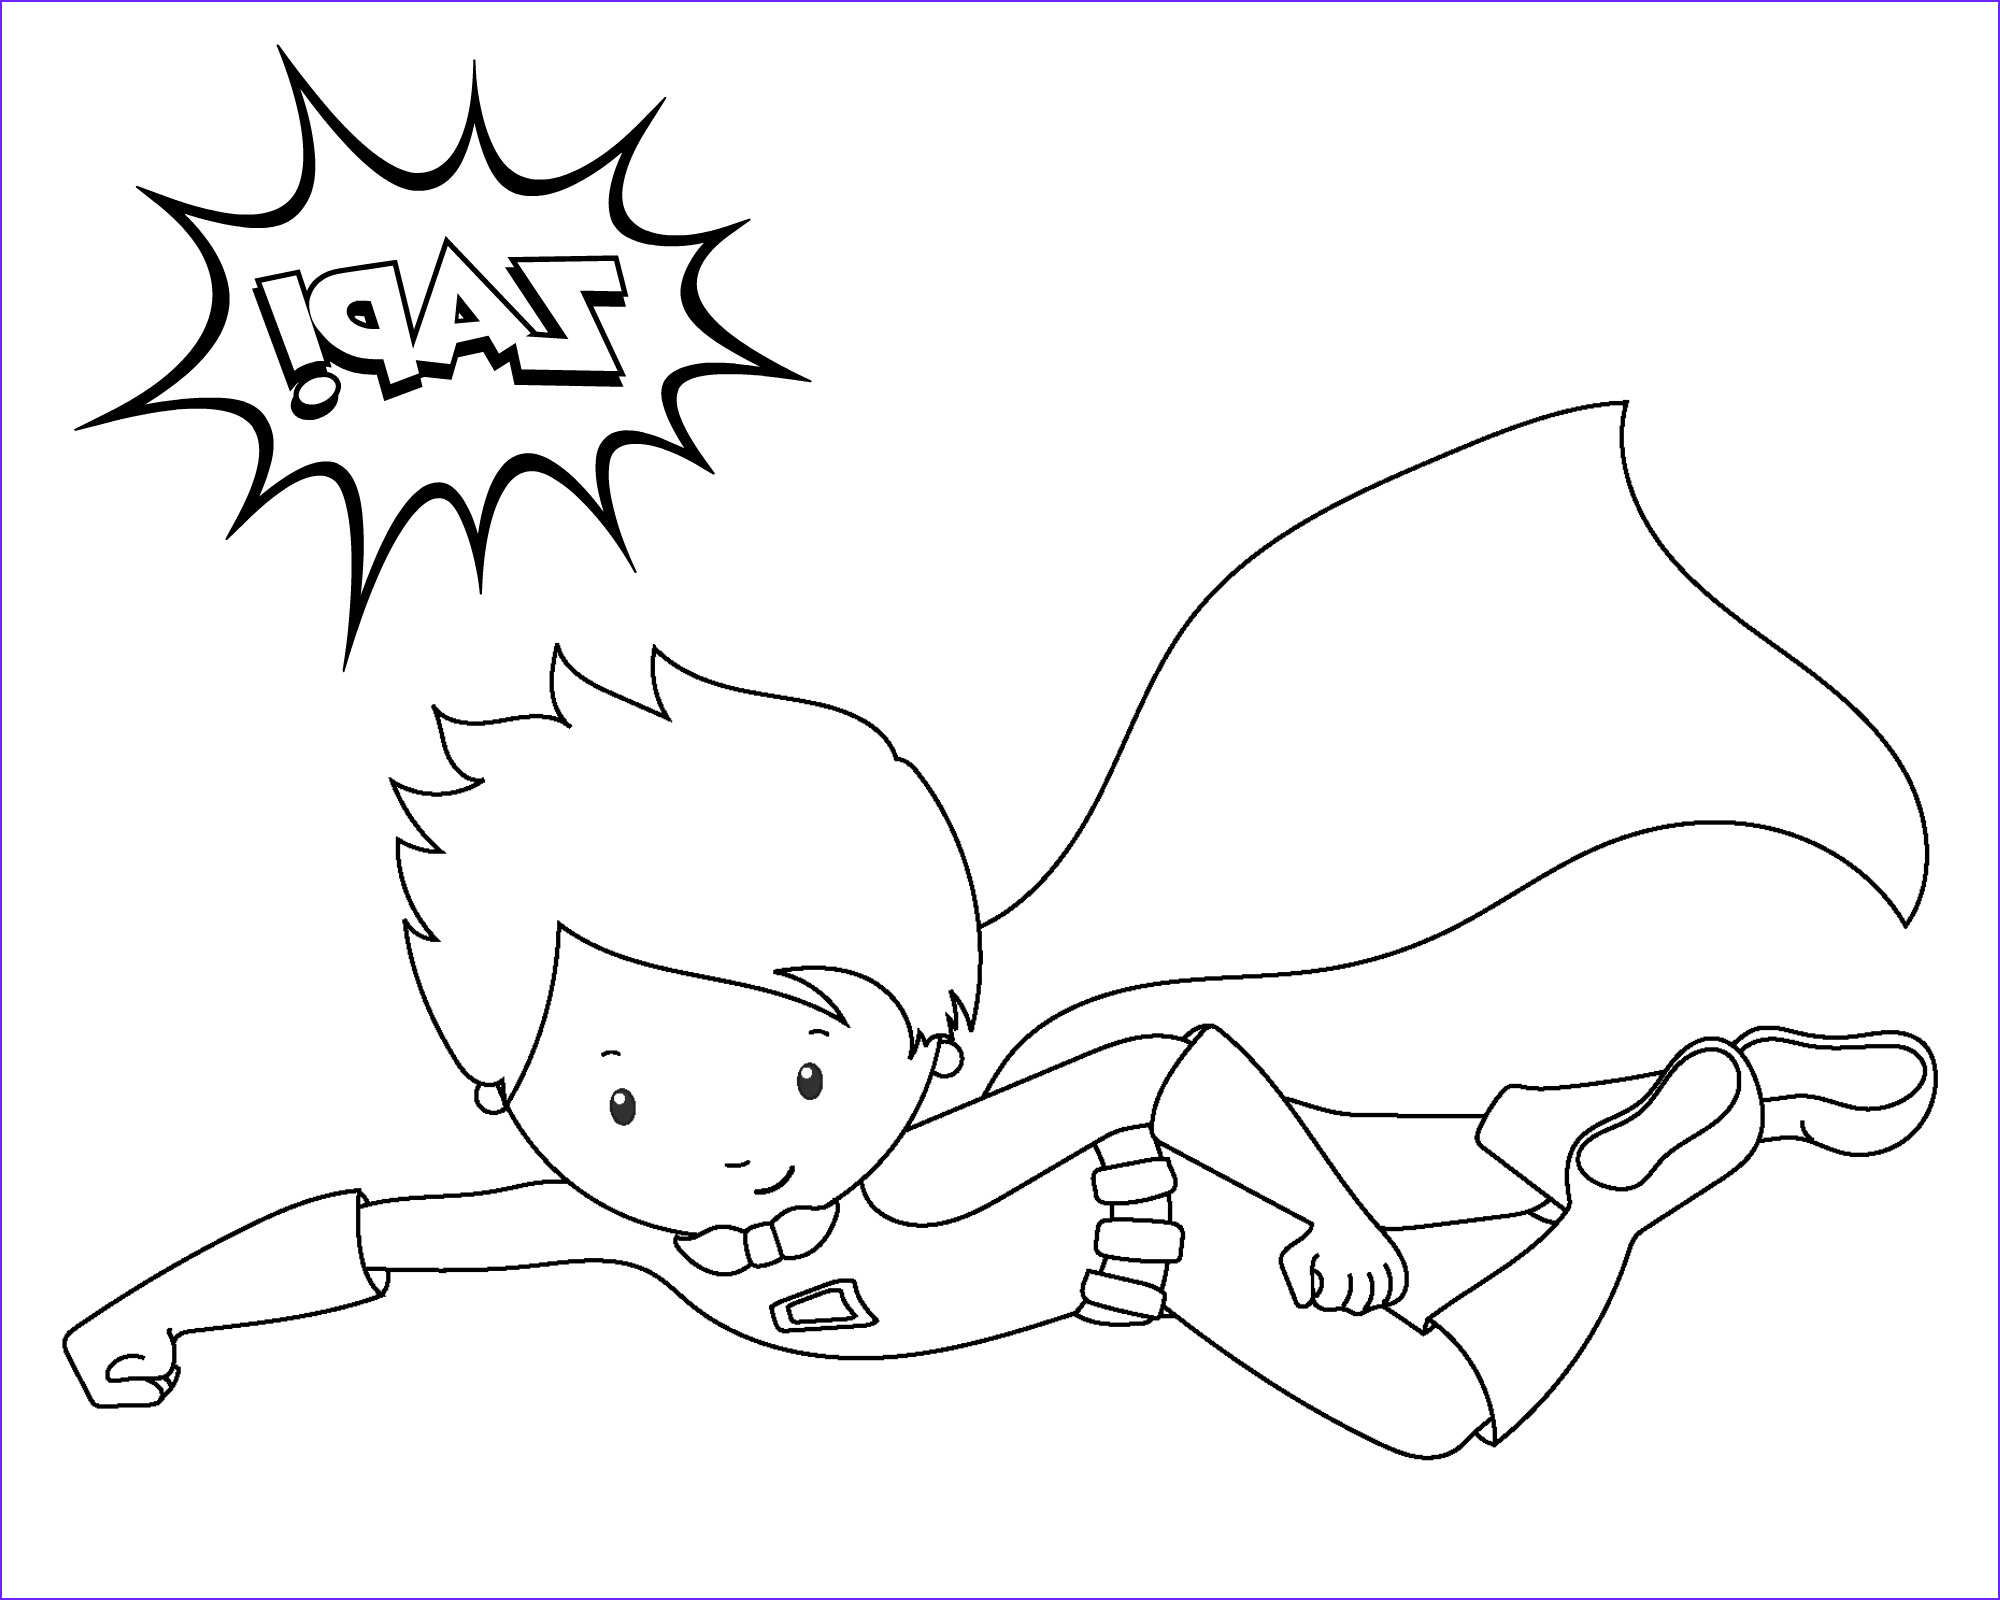 Superhero Coloring Pages Unique Collection Free Printable Superhero Coloring Sheets for Kids Crazy